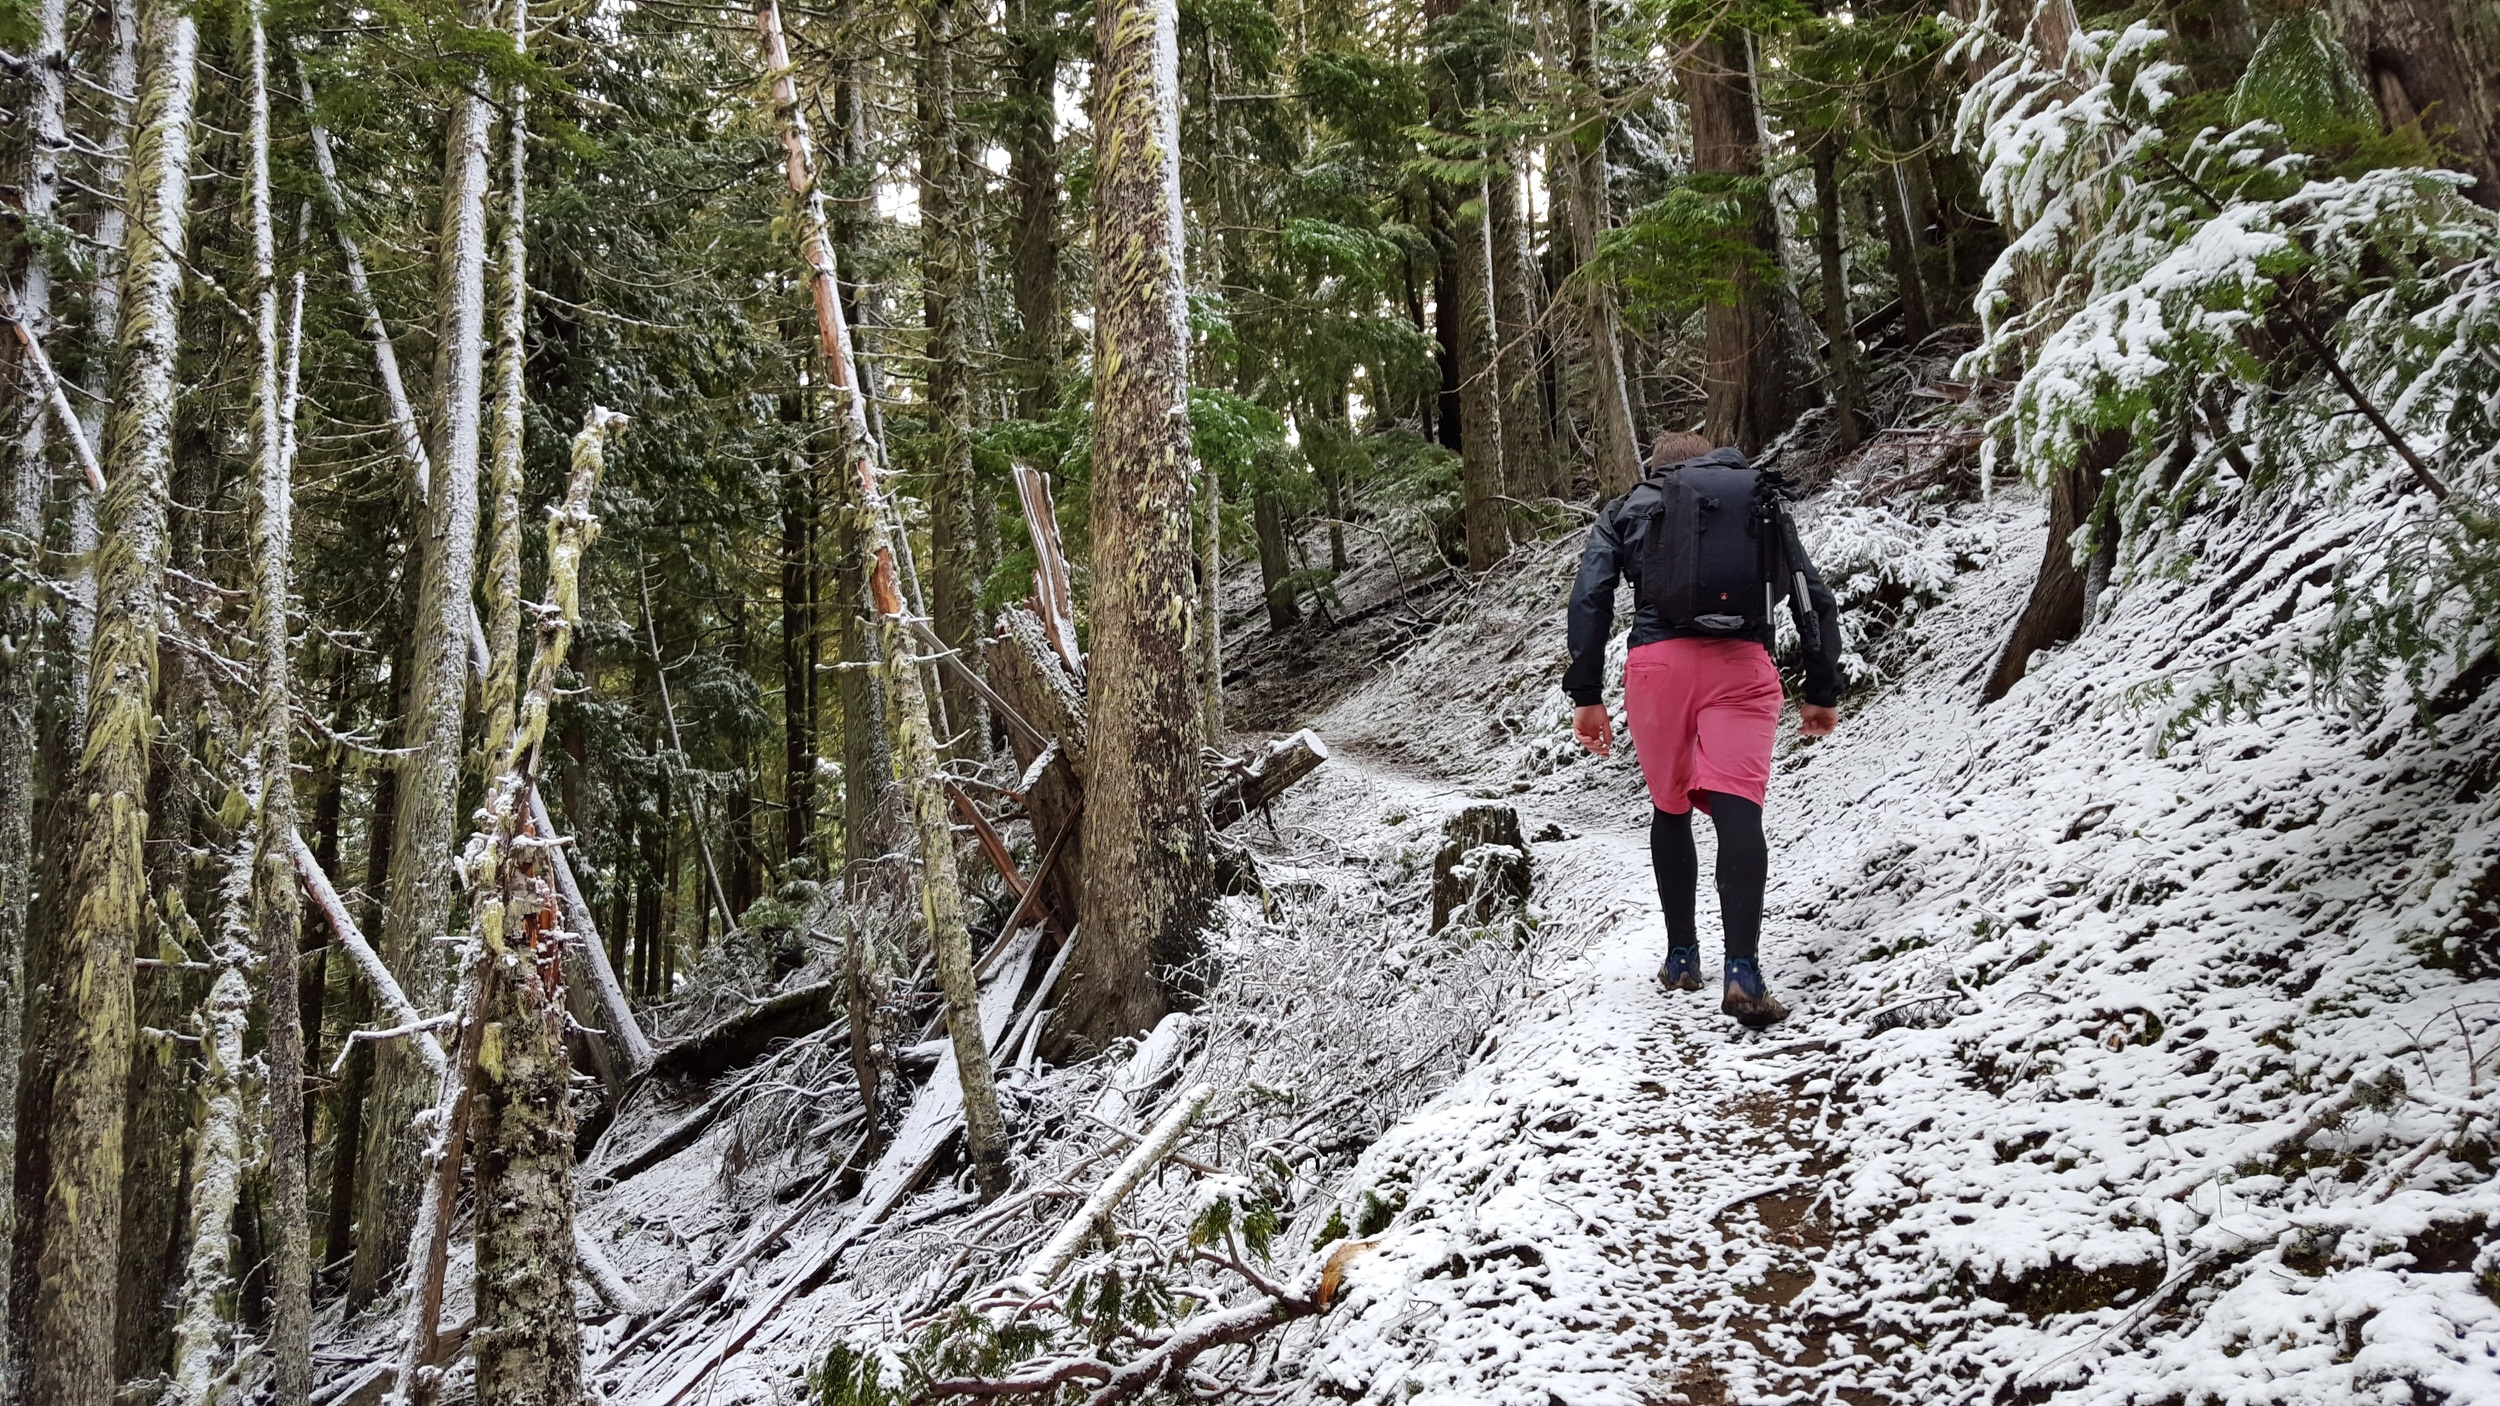 Hiking in the snow just before reaching the Pyramid Peak lookout.